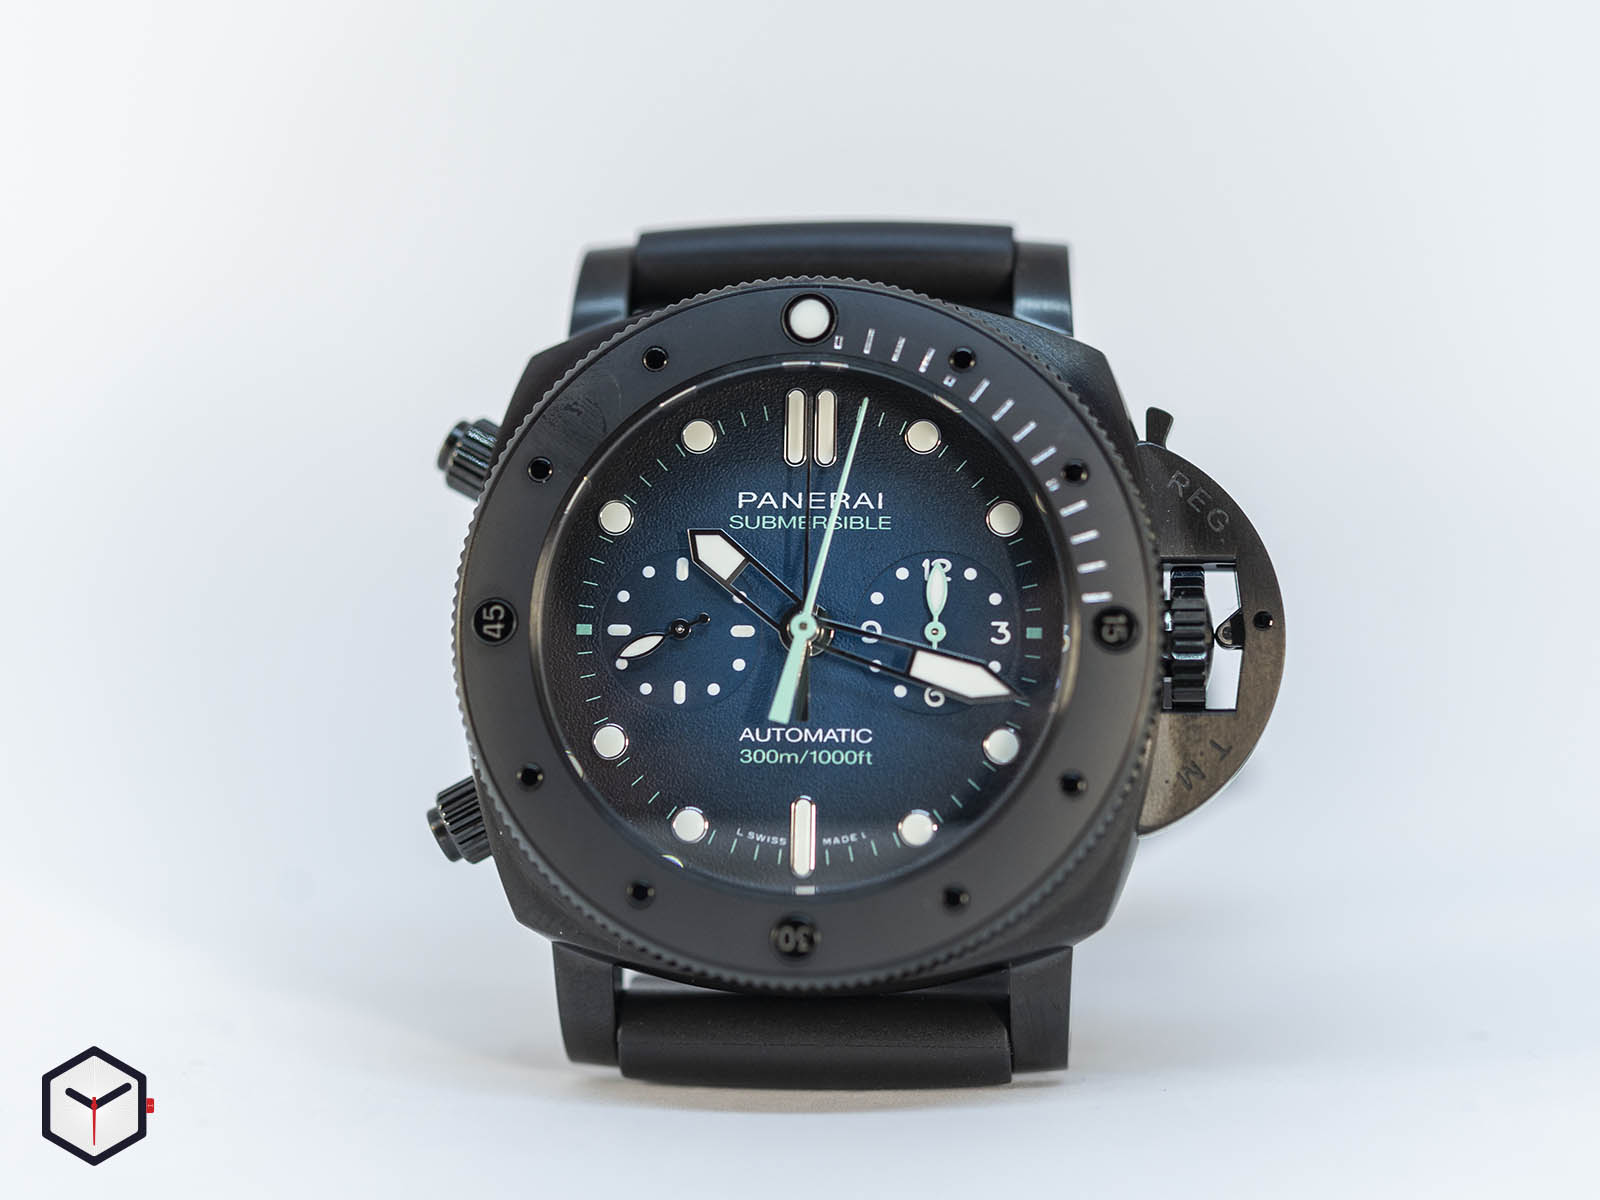 pam00983-officine-panerai-submersible-chrono-guillaume-nery-edition-blue-and-black-dial-8-.jpg